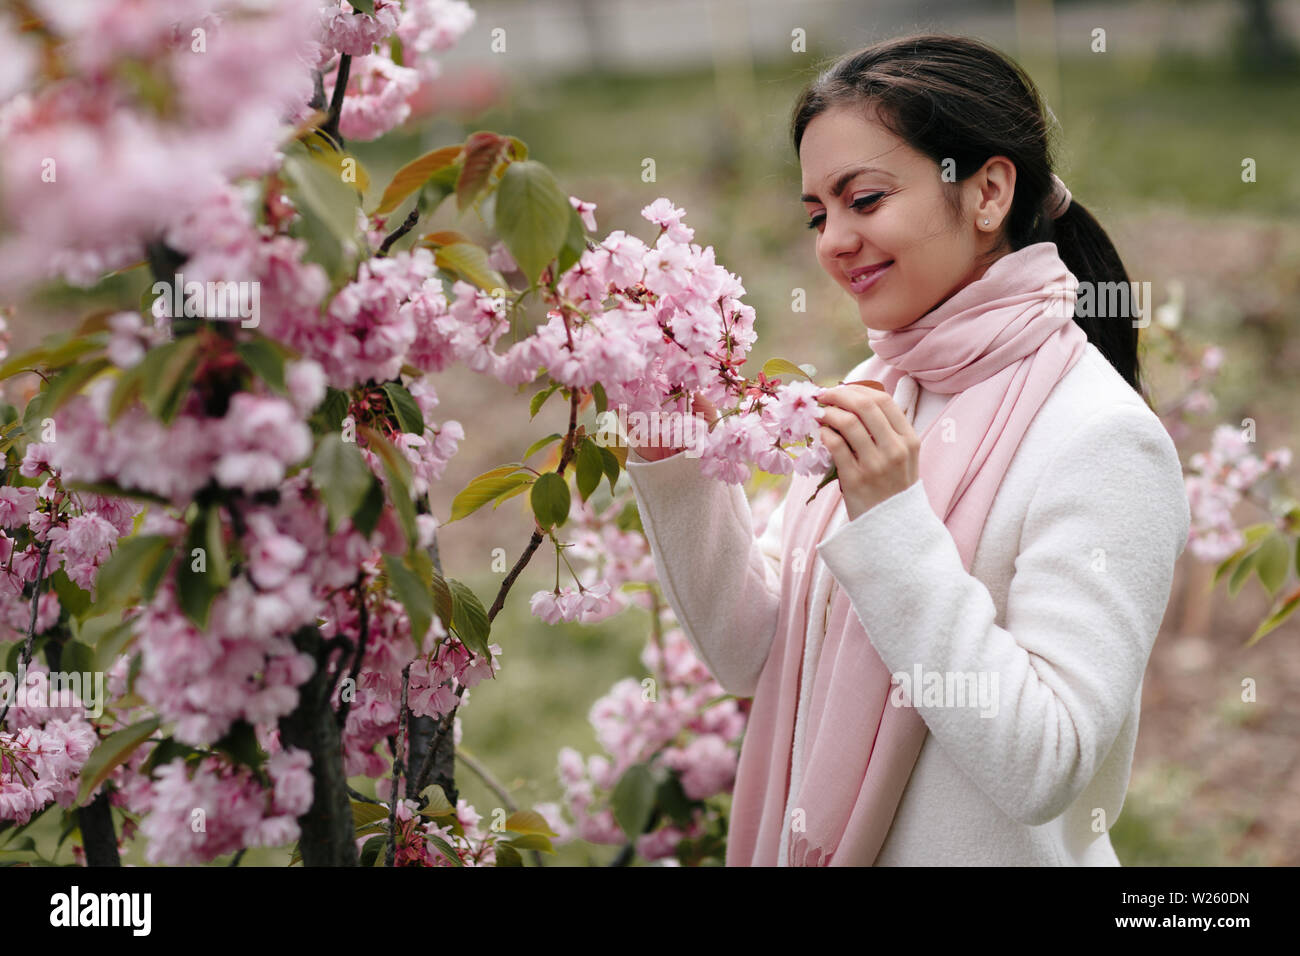 Japanese Woman And Cherry Blossom Stock Photos Japanese